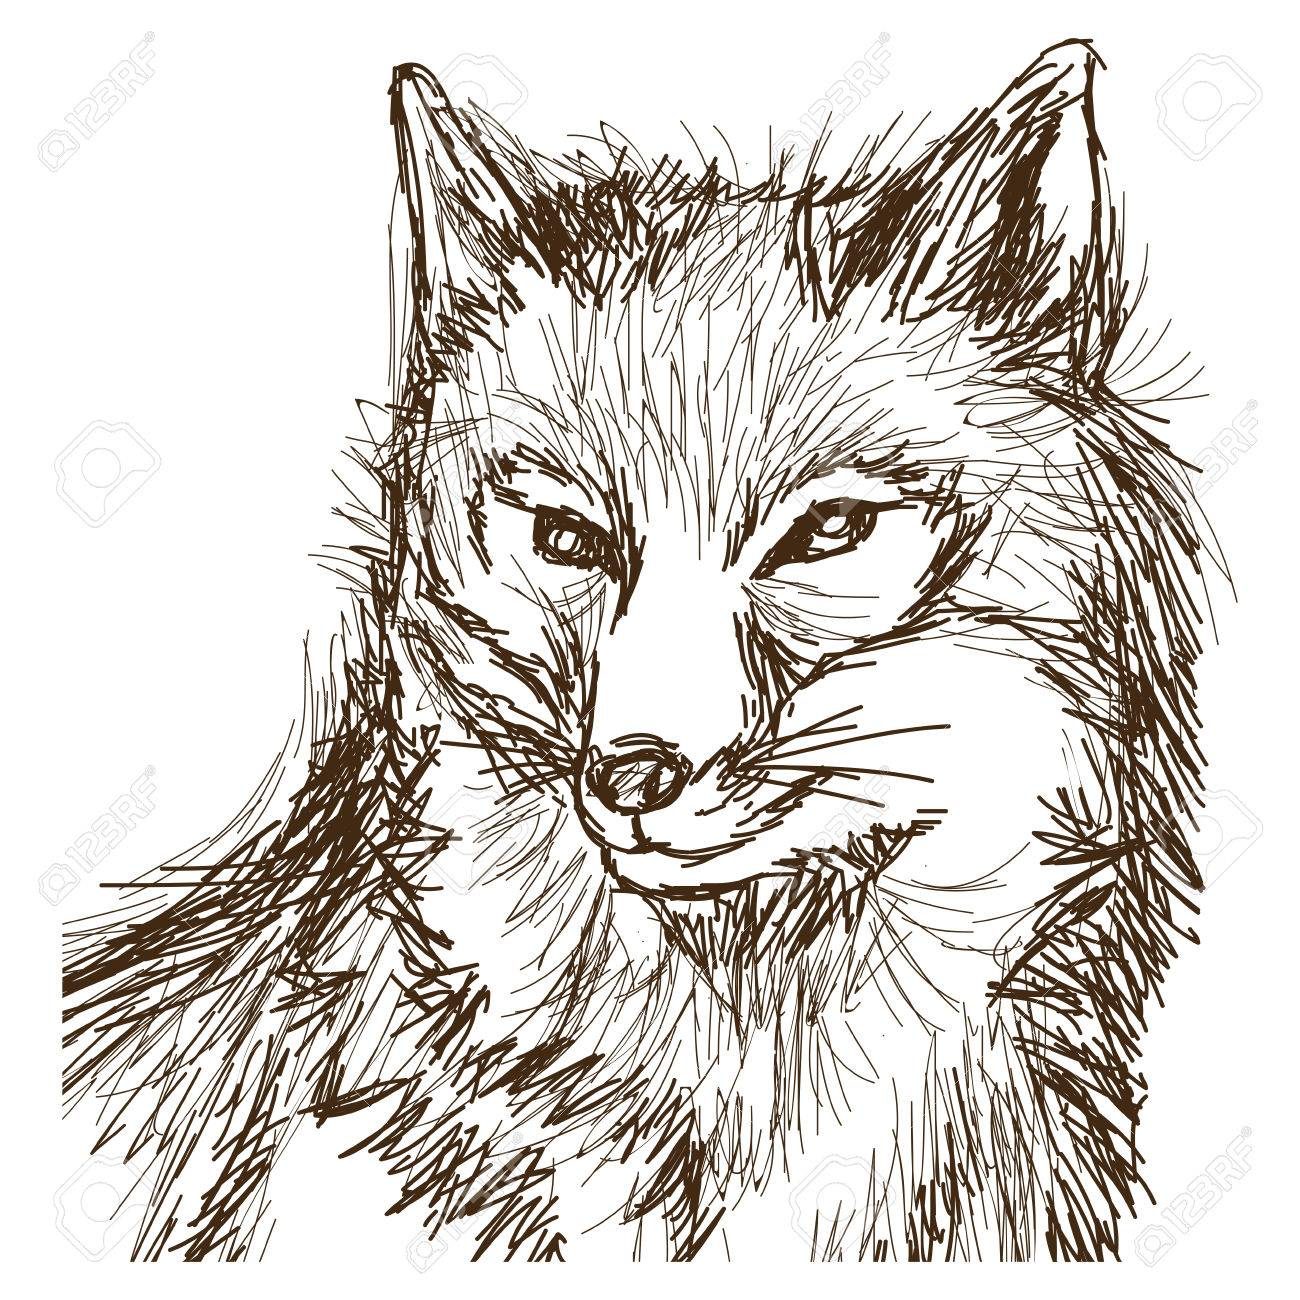 Wolf wildlife animal image is hand drawn portrait pencil sketch